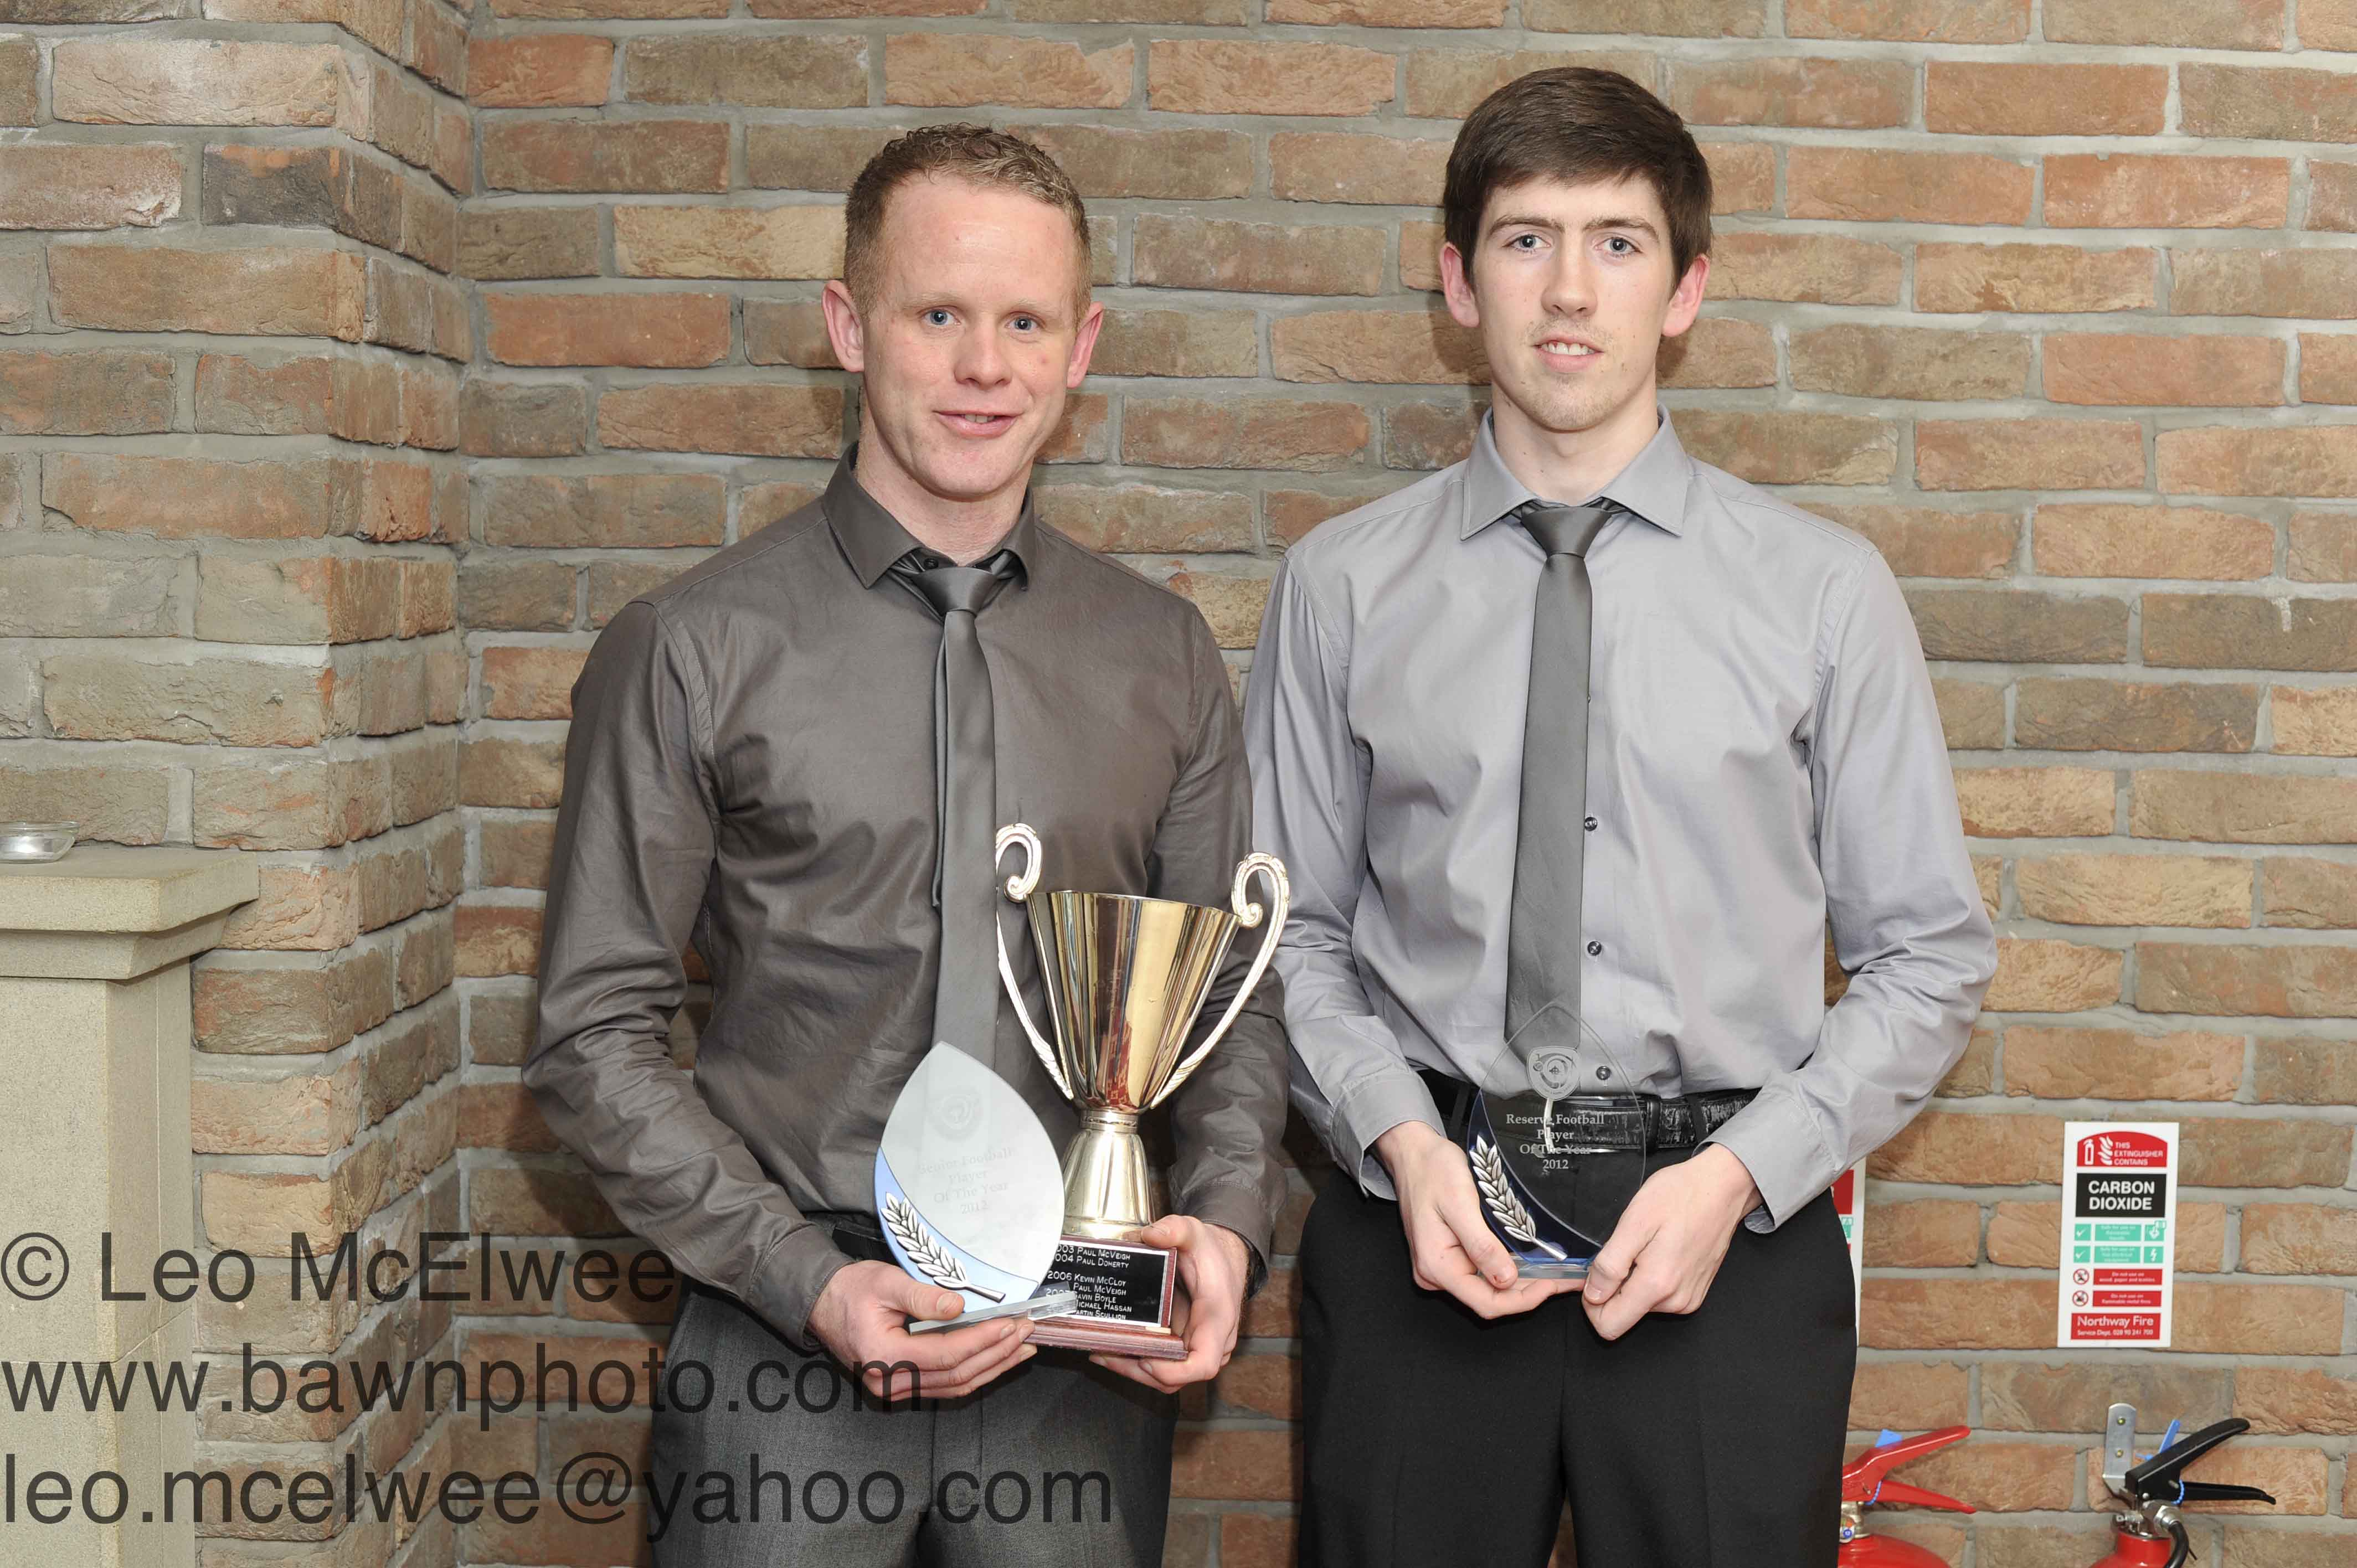 Joe Duggan (left) was presented with the Senior Footballer of the Year award, while Caelin McGurk was presented with Reserve Player of the Year